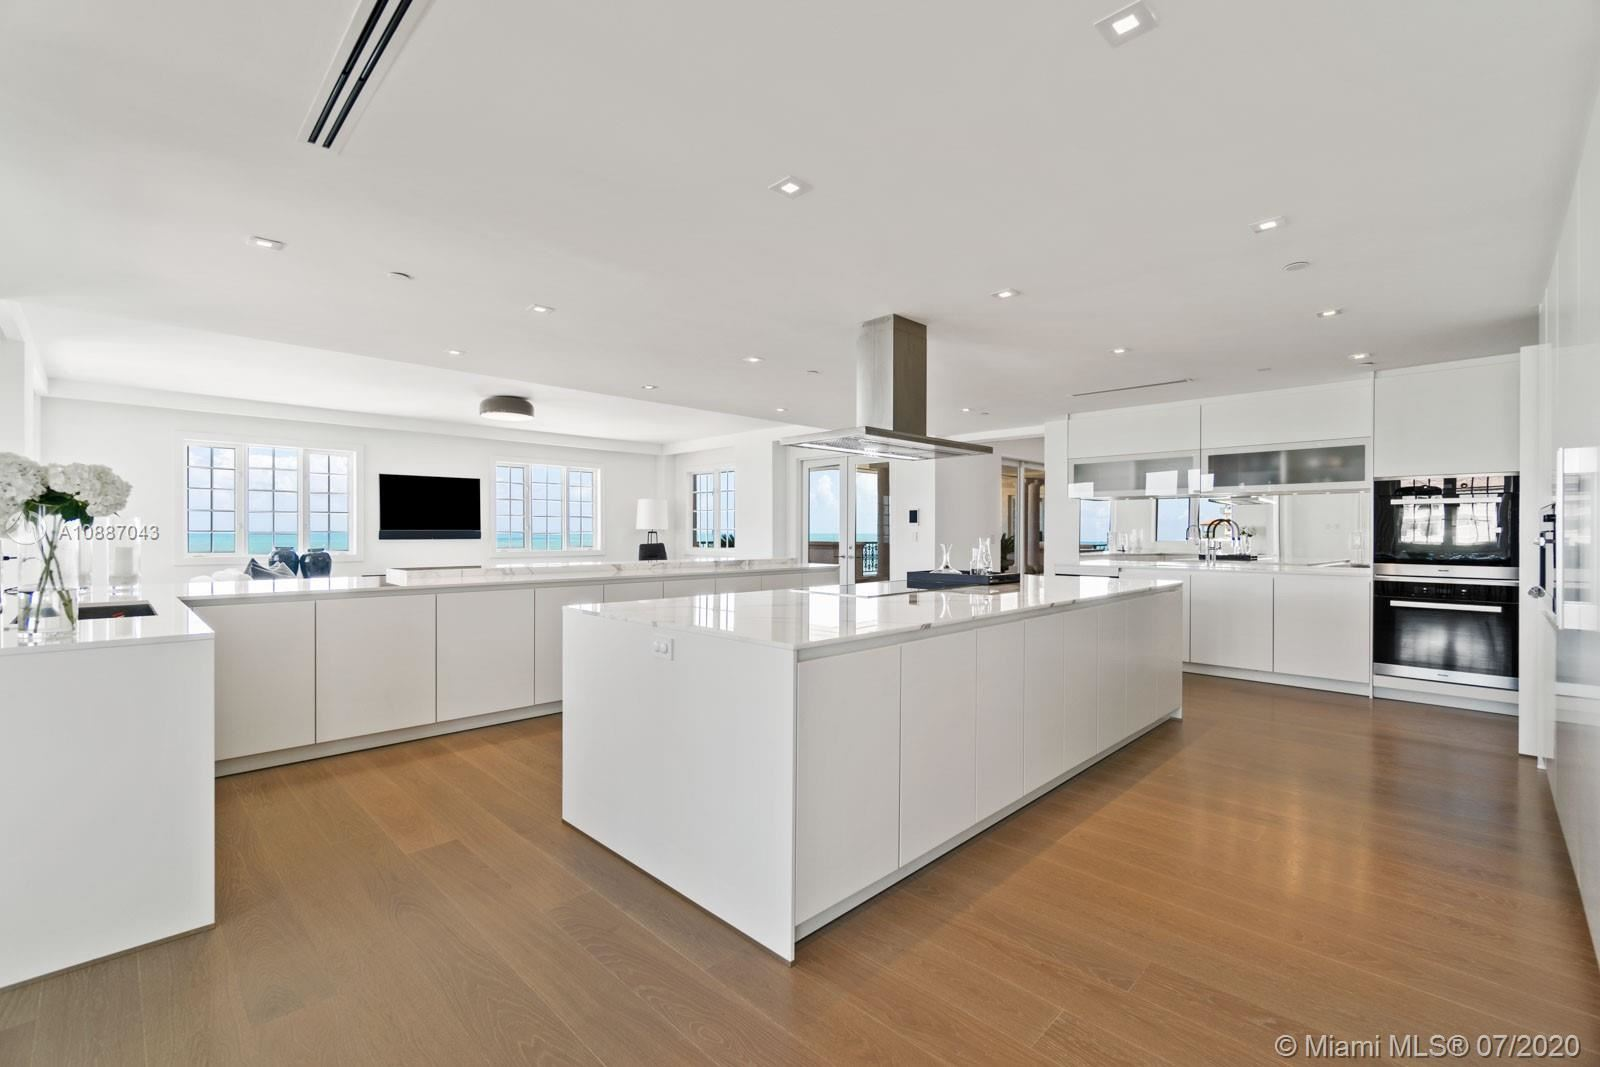 Photo 4 of Listing MLS a10887043 in 7764 Fisher Island Dr #7764 Miami Beach FL 33109